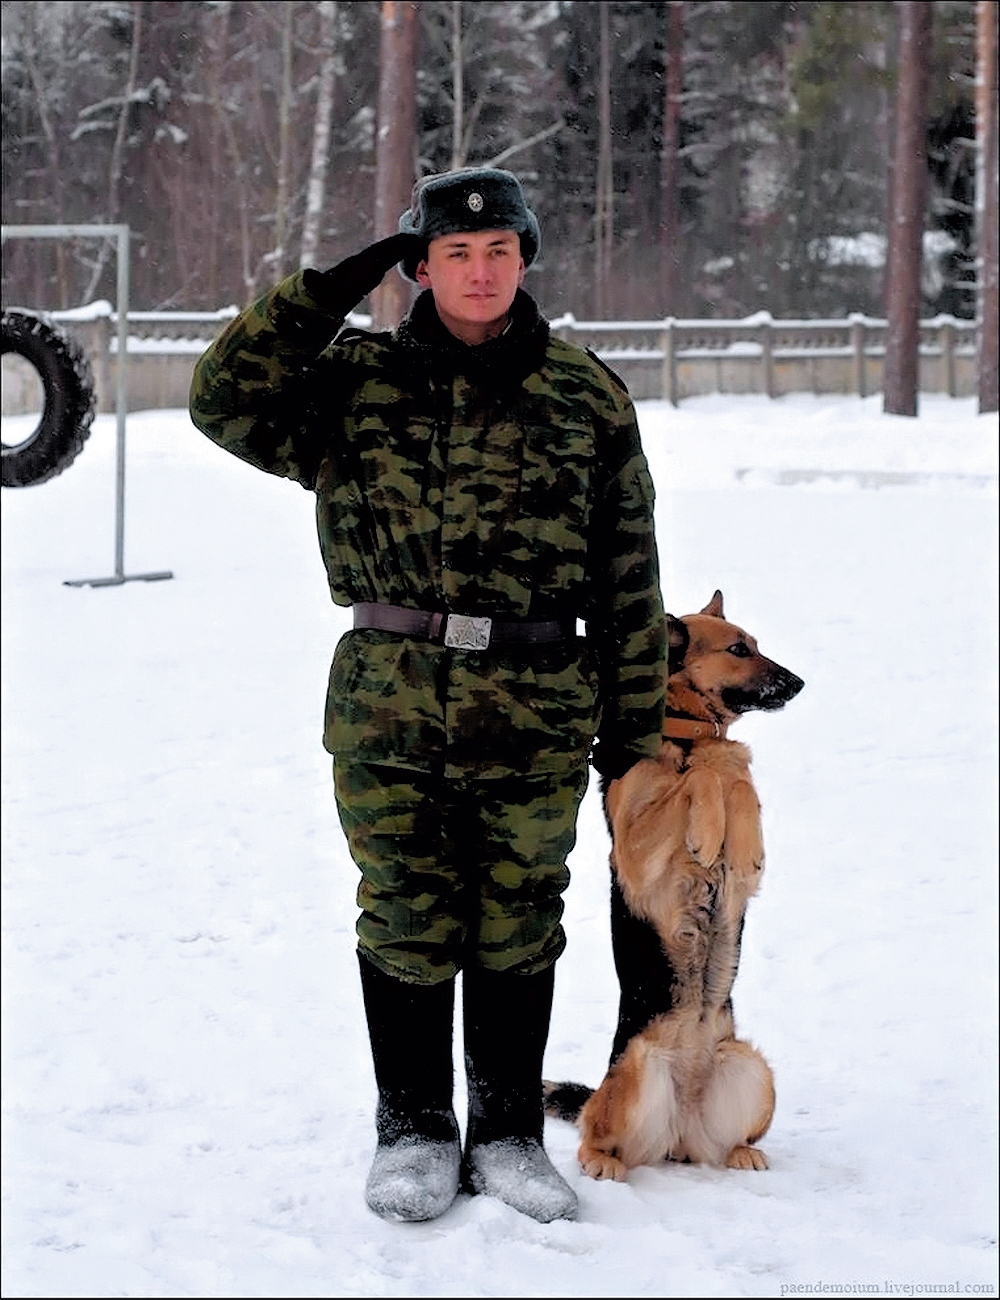 00 Russian army soldier with dog. 02.10.13